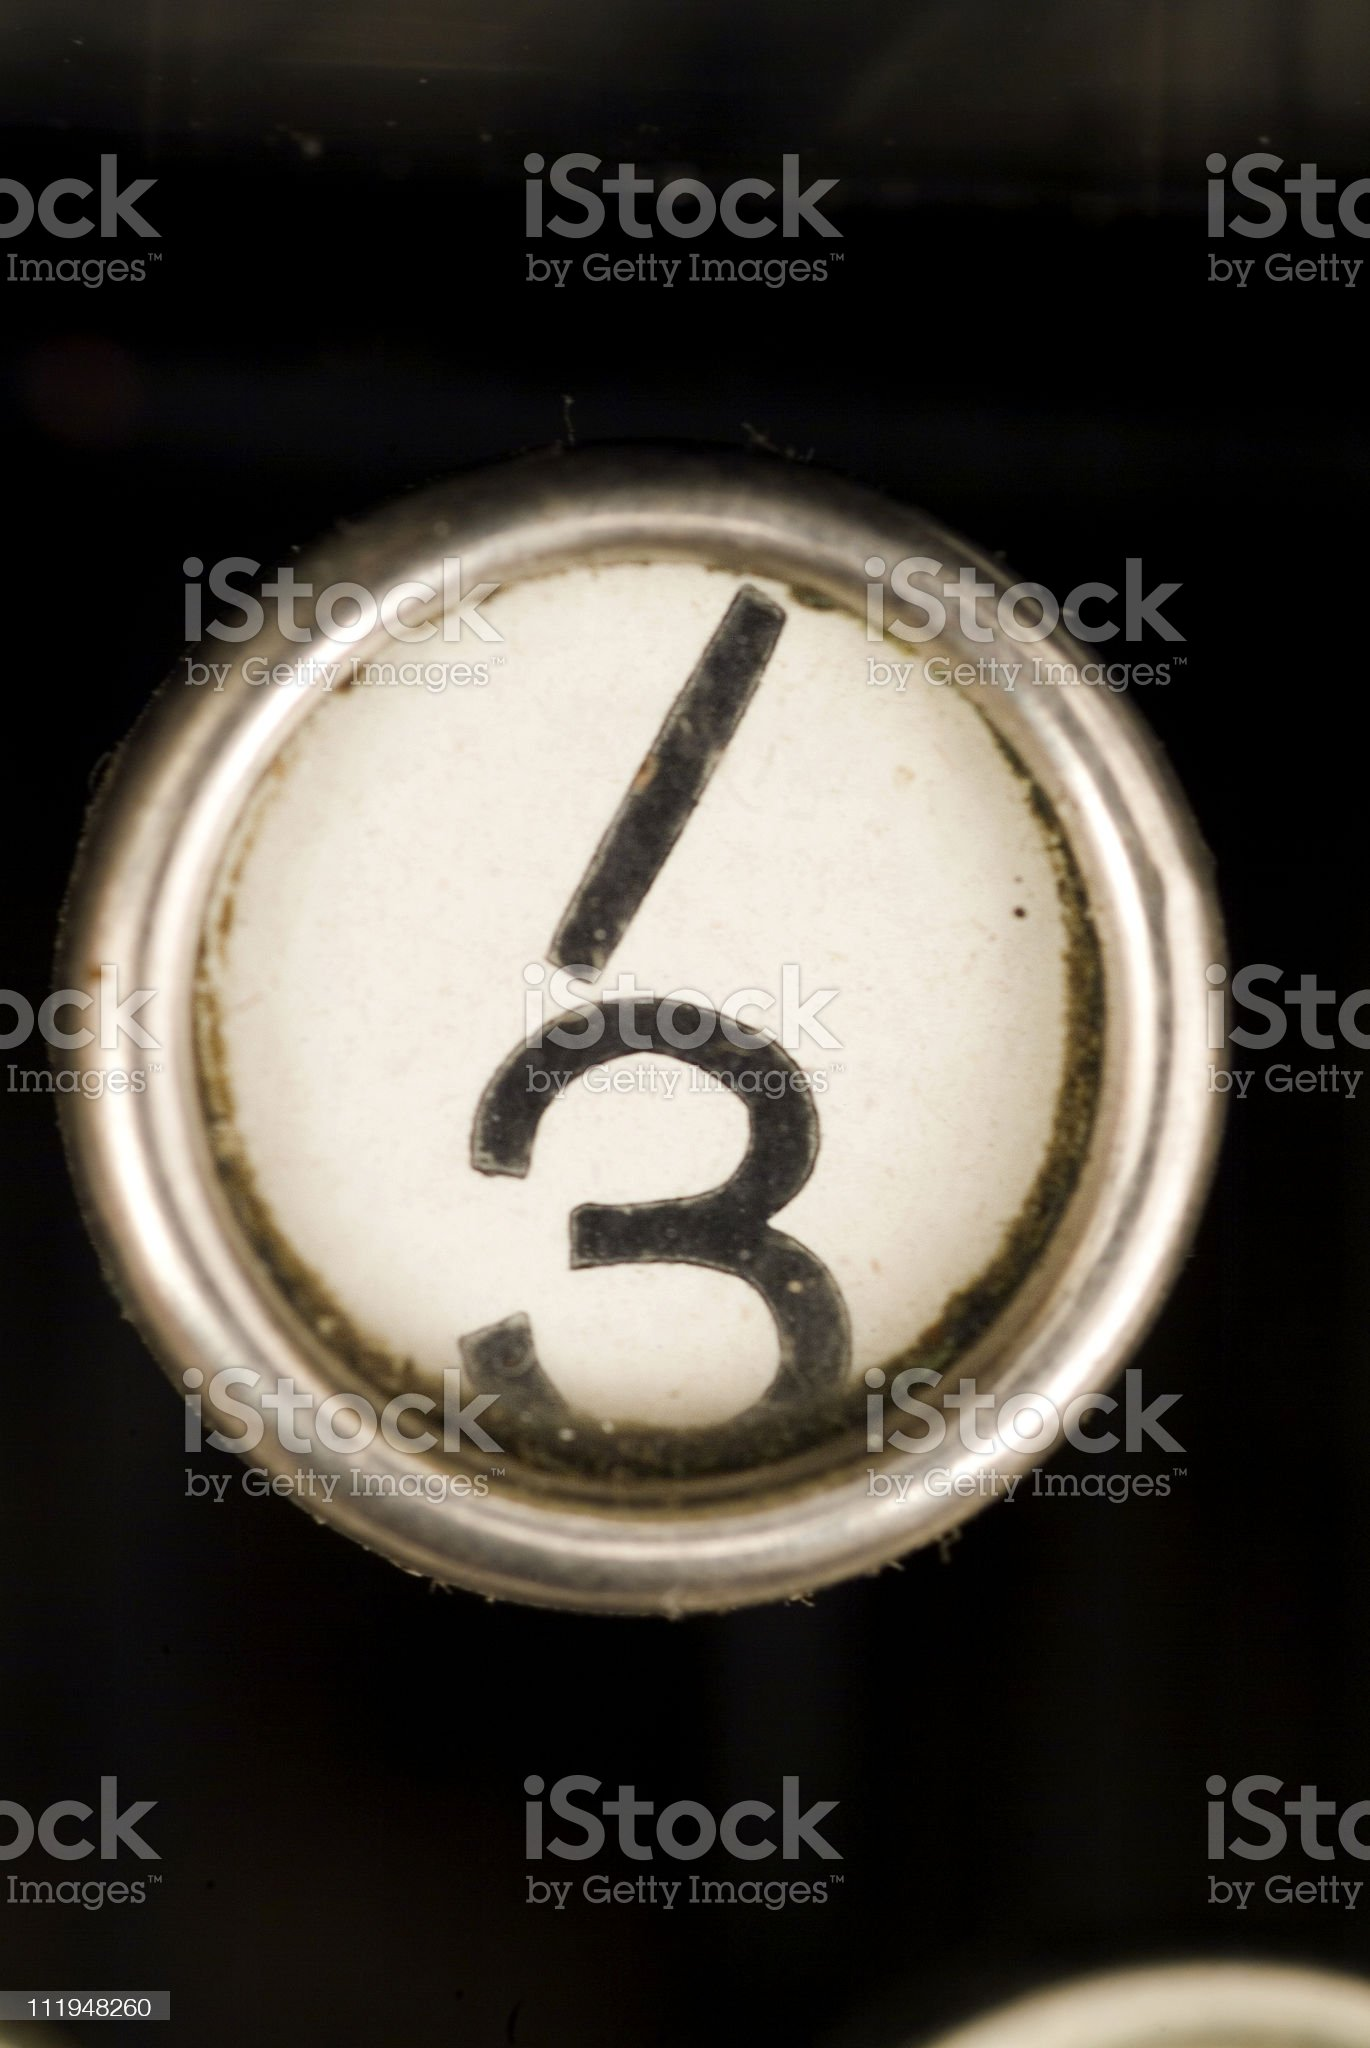 The 3 key from an antique typewriter royalty-free stock photo